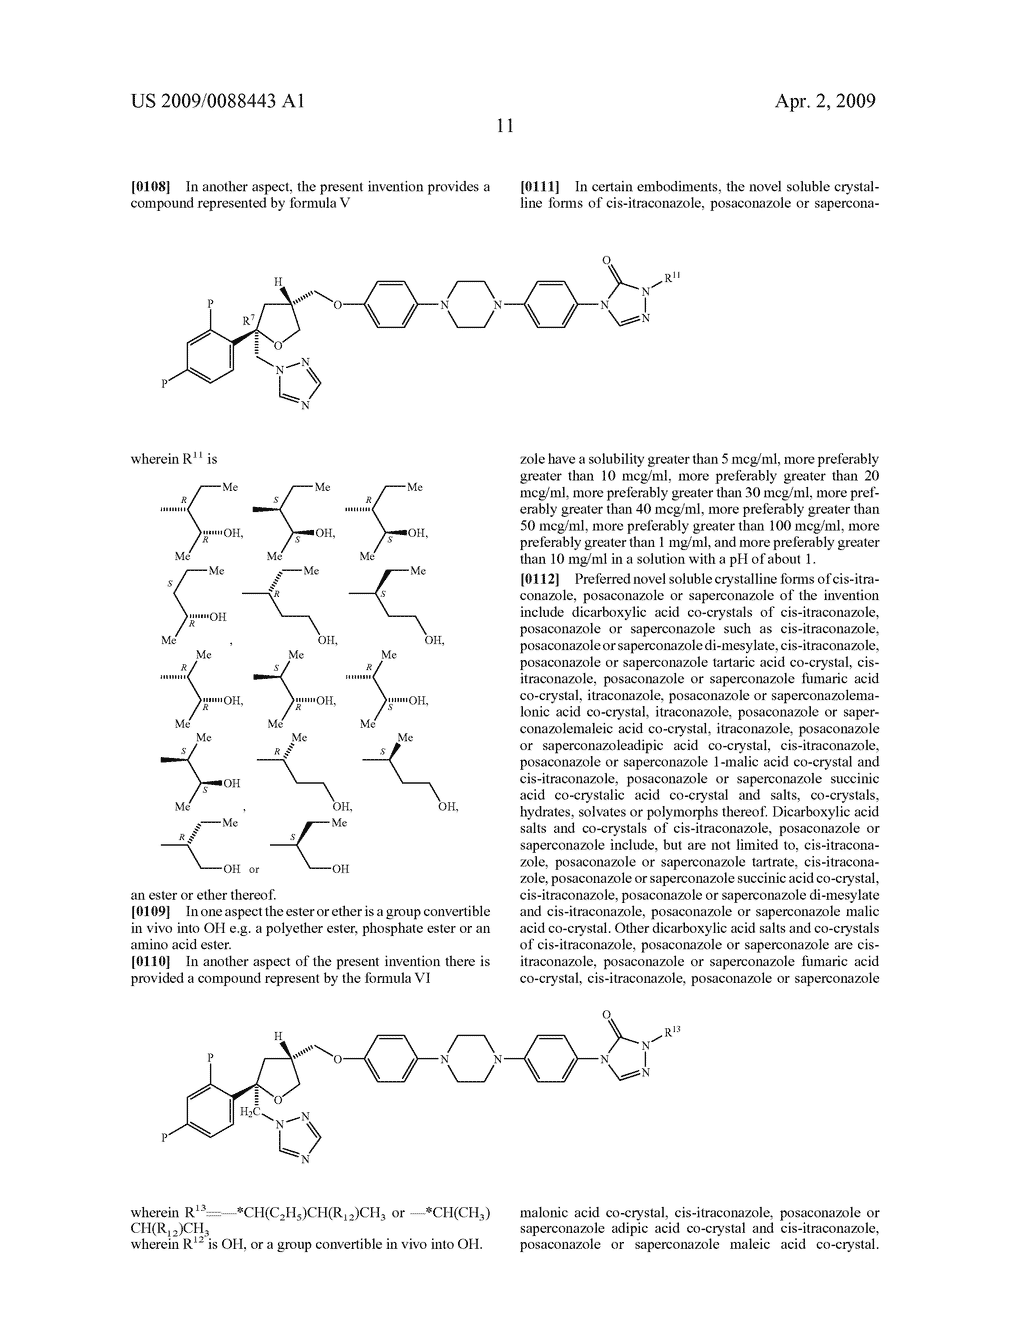 NOVEL CRYSTALLINE FORMS OF CONAZOLES AND METHODS OF MAKING AND USING THE SAME - diagram, schematic, and image 48